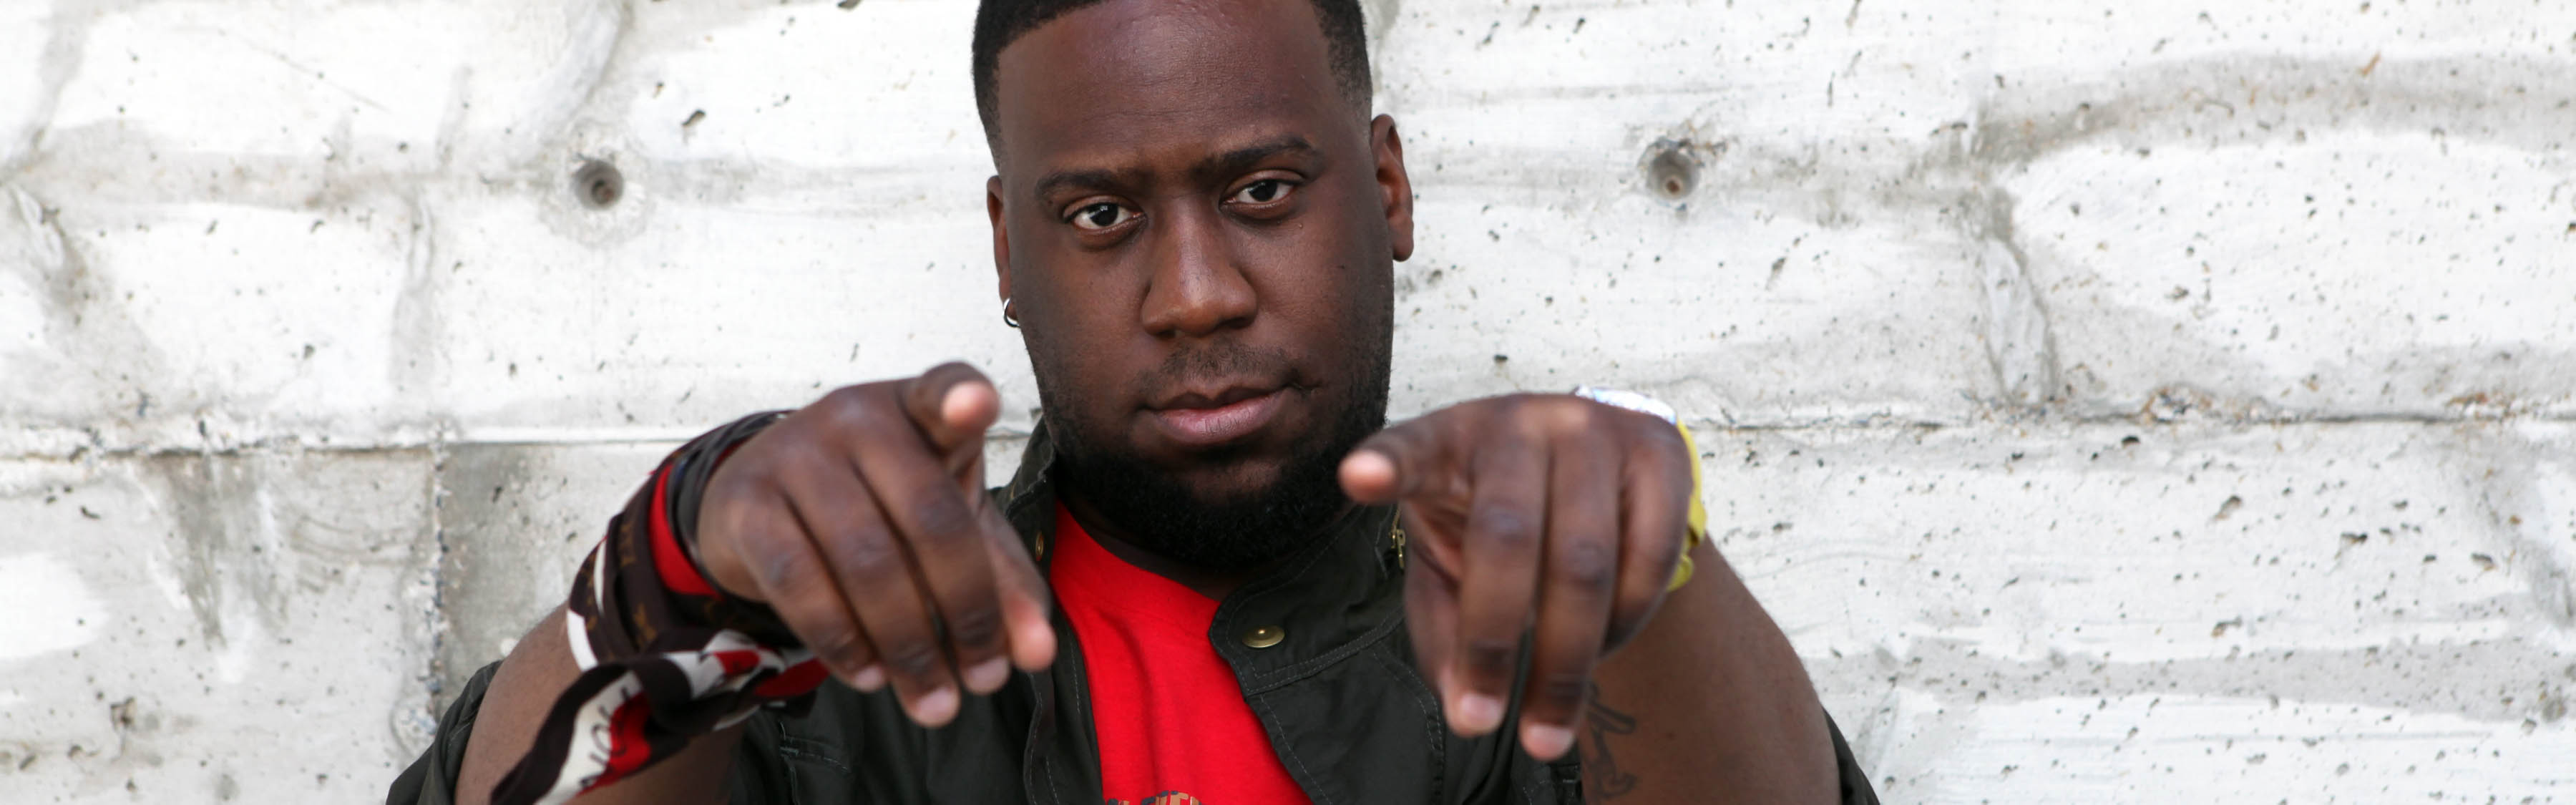 Robert Glasper by Janette Beckman